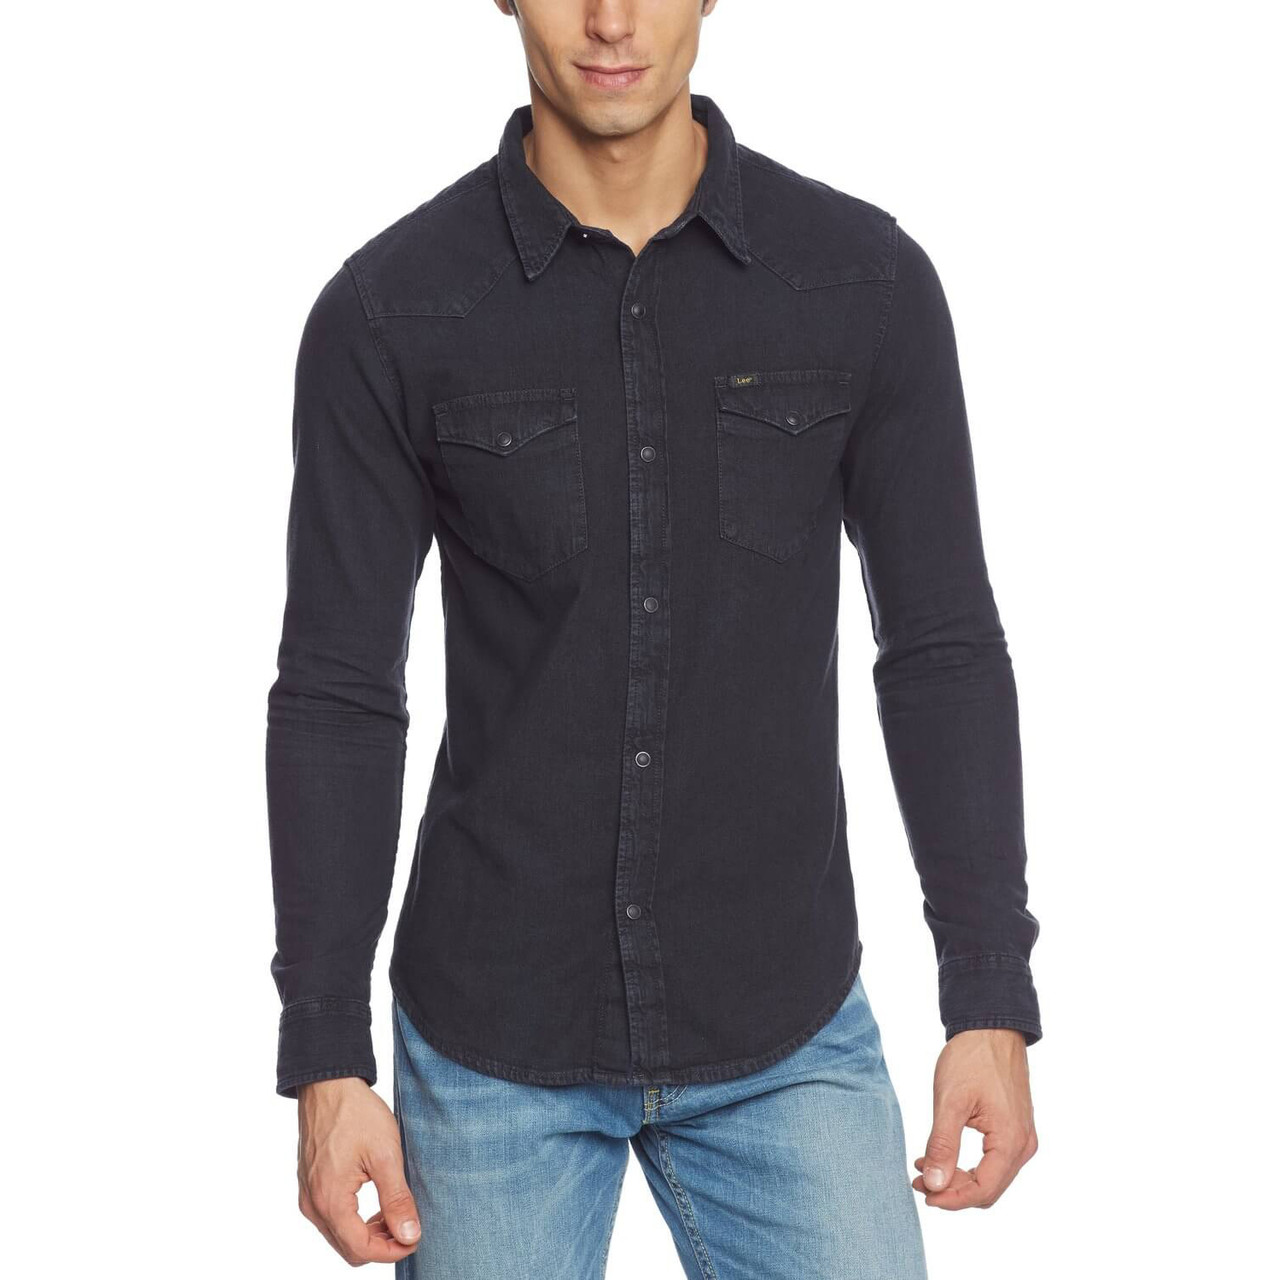 e1b2d2bd Lee Western Denim Shirt Pitch Black Image. Double tap to zoom